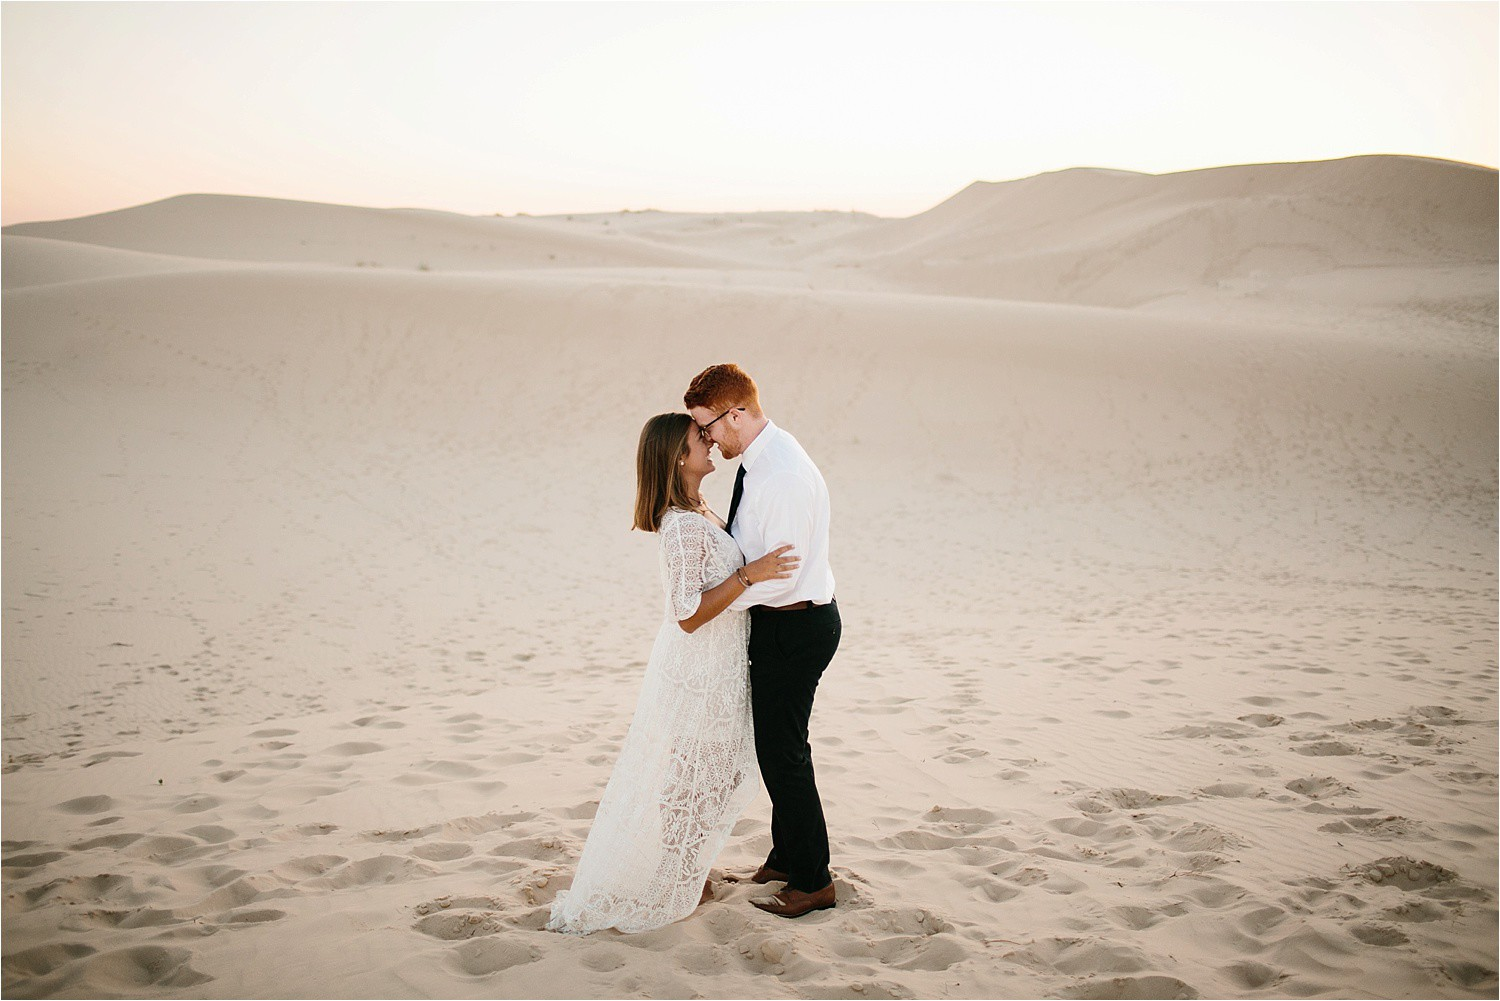 Lauren + Jacob __ a monahans sand dunes engagement session at sunrise by North Texas Wedding Photographer, Rachel Meagan Photography __ 05